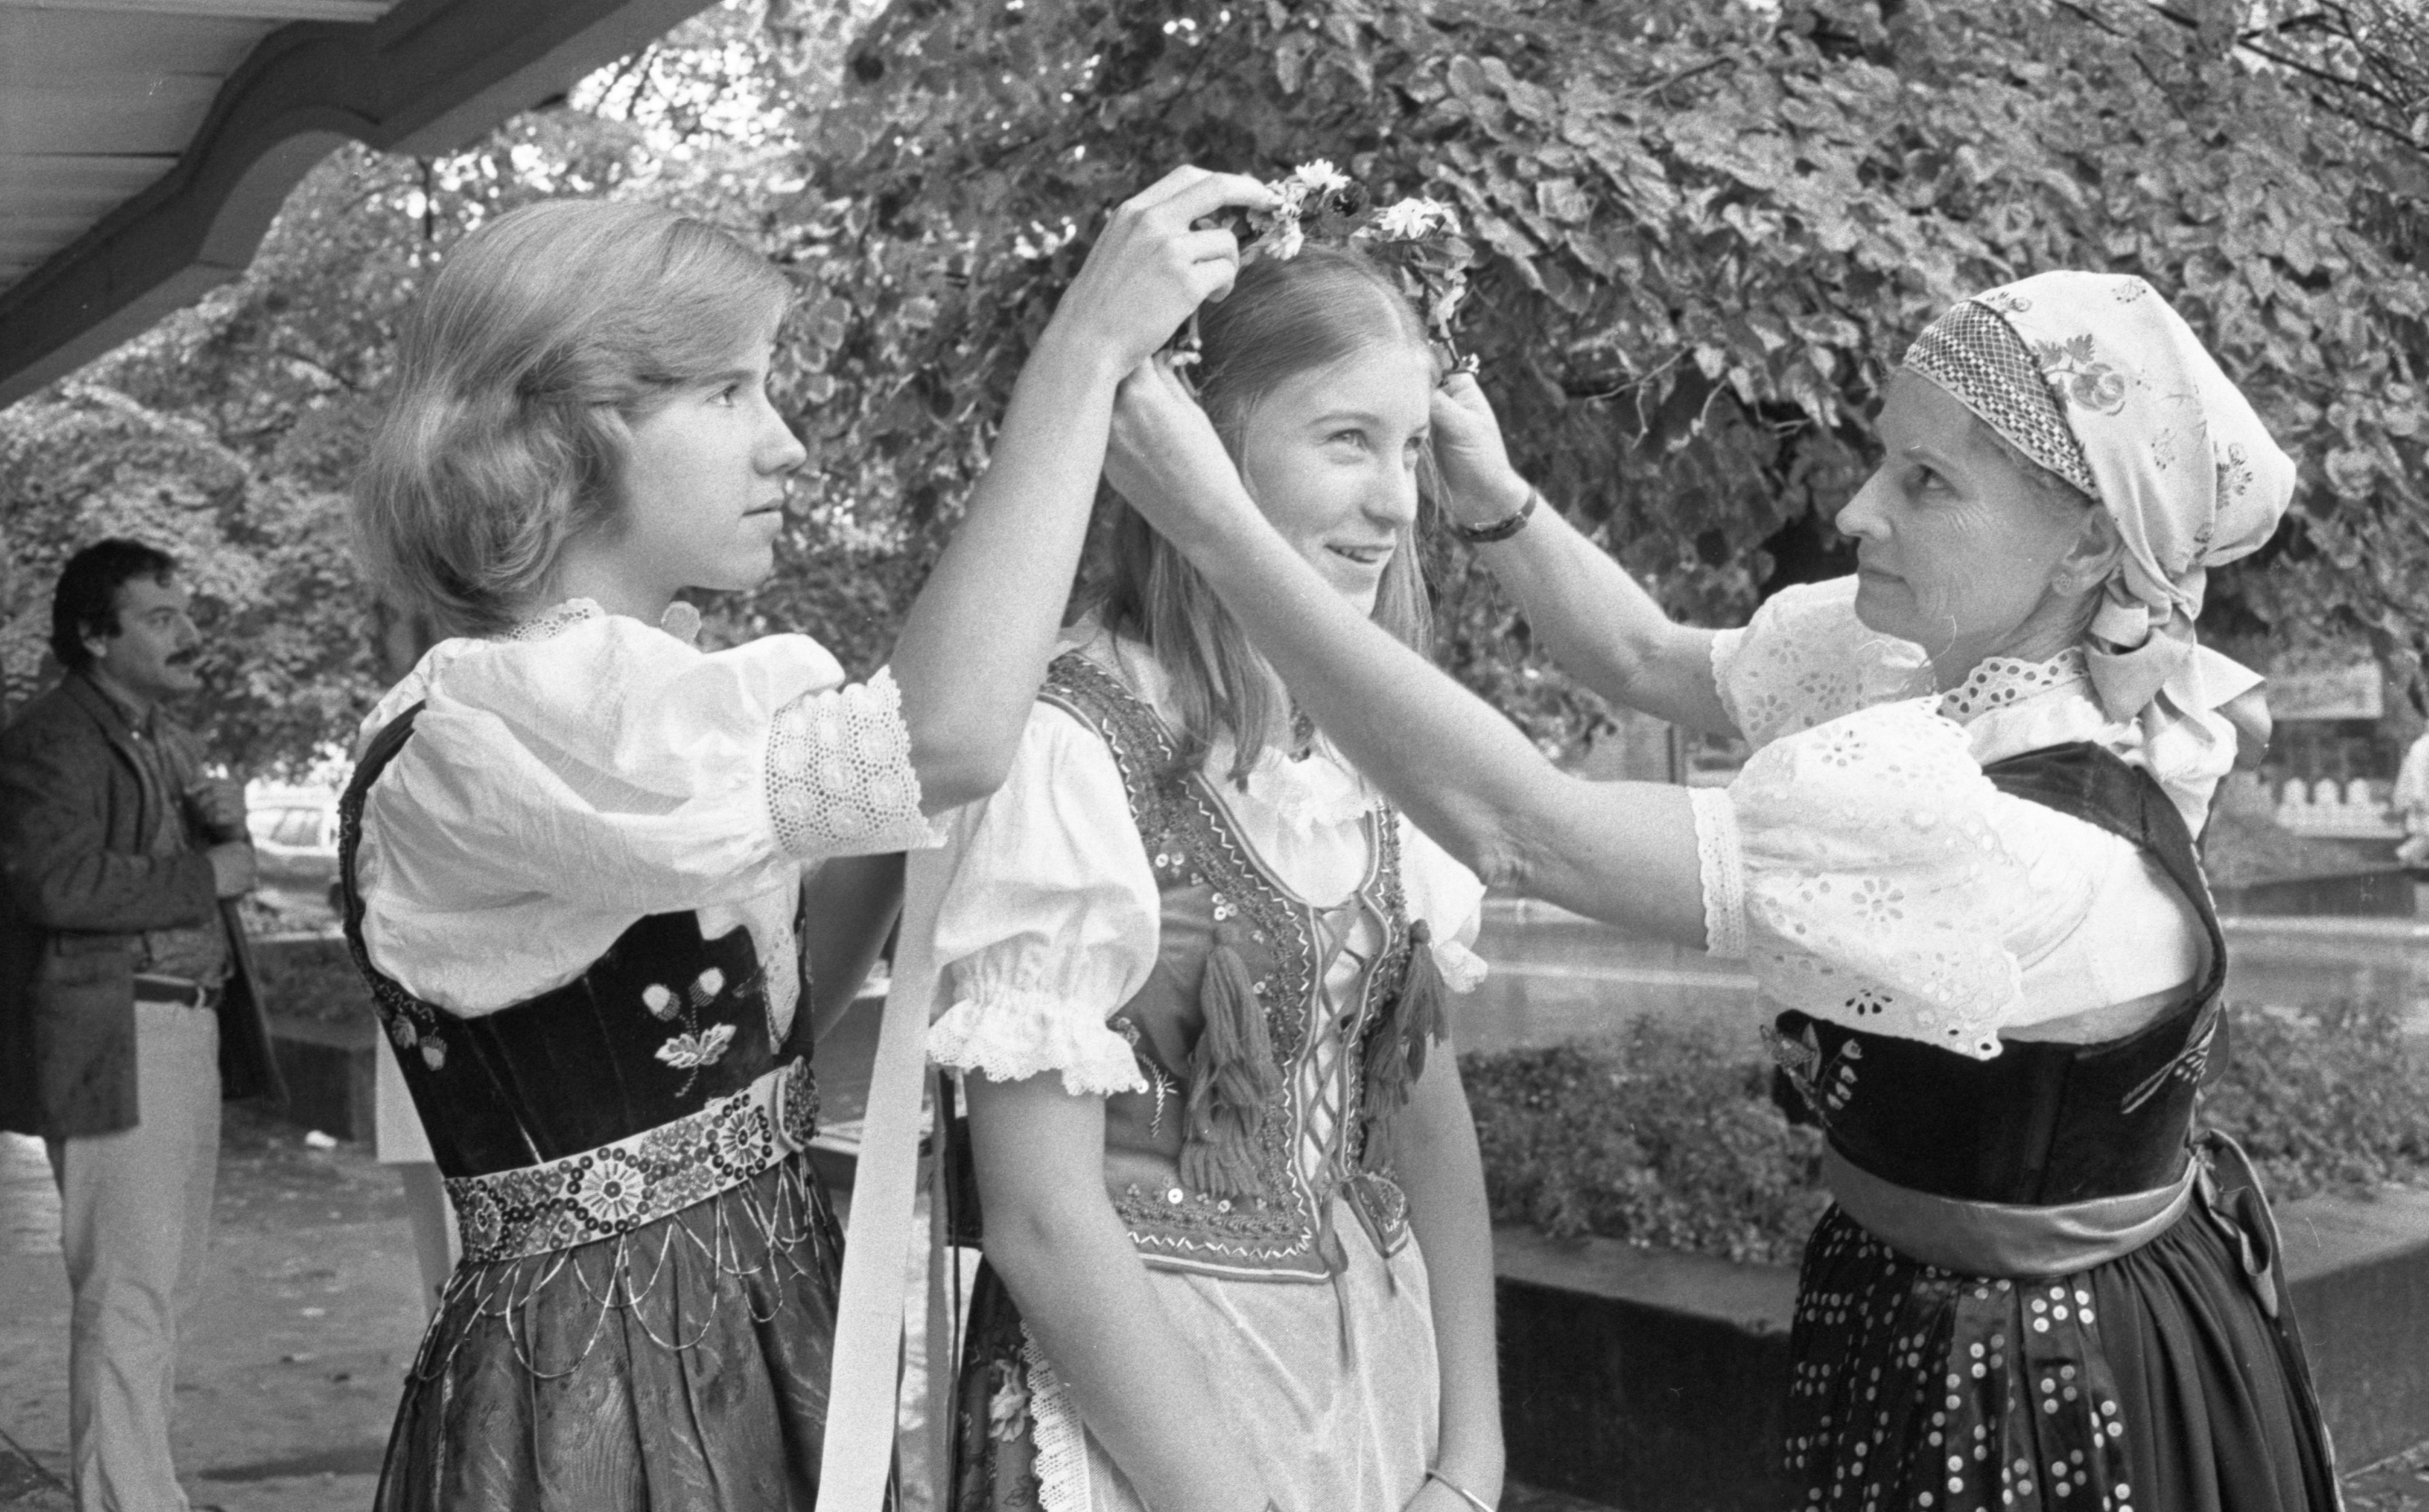 Ann & Irene Cimoszko Prepare the Polish Headdress of Chris Idzikowski For The Ann Arbor Ethnic Fair, September 1975 image